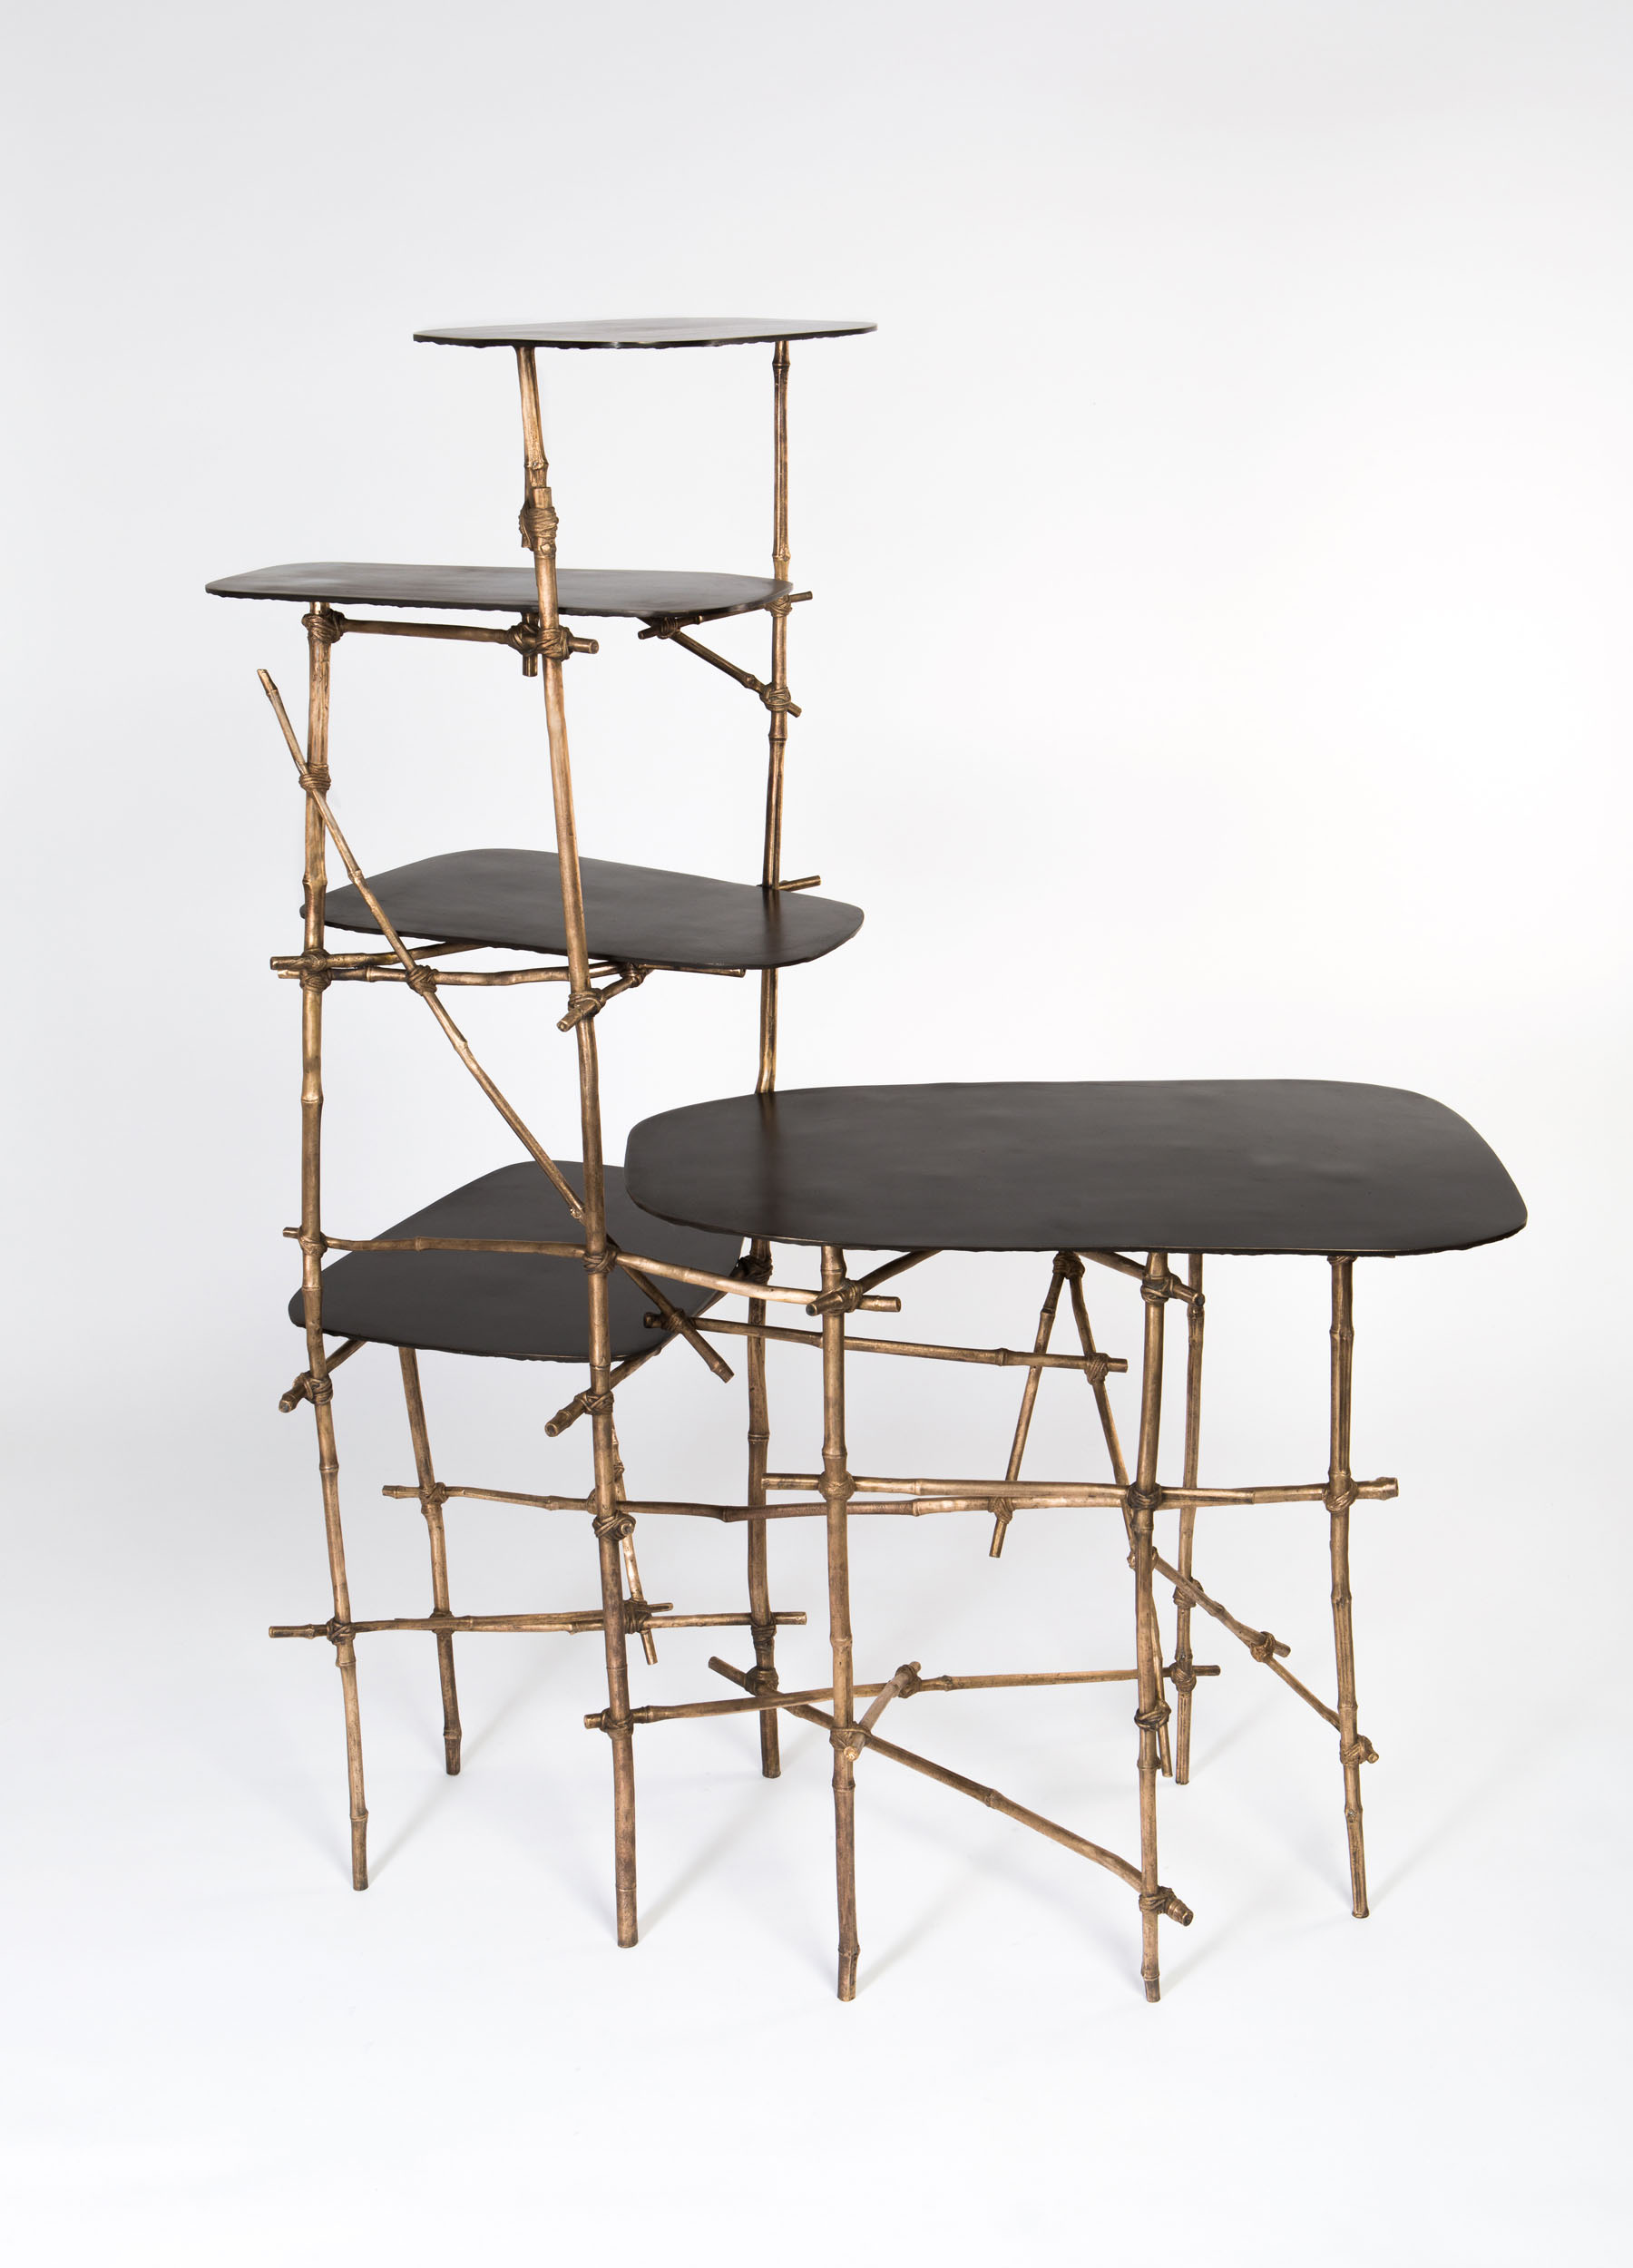 Vis a Vis shelving unit with bronze cast bamboo frame and multiple surfaces